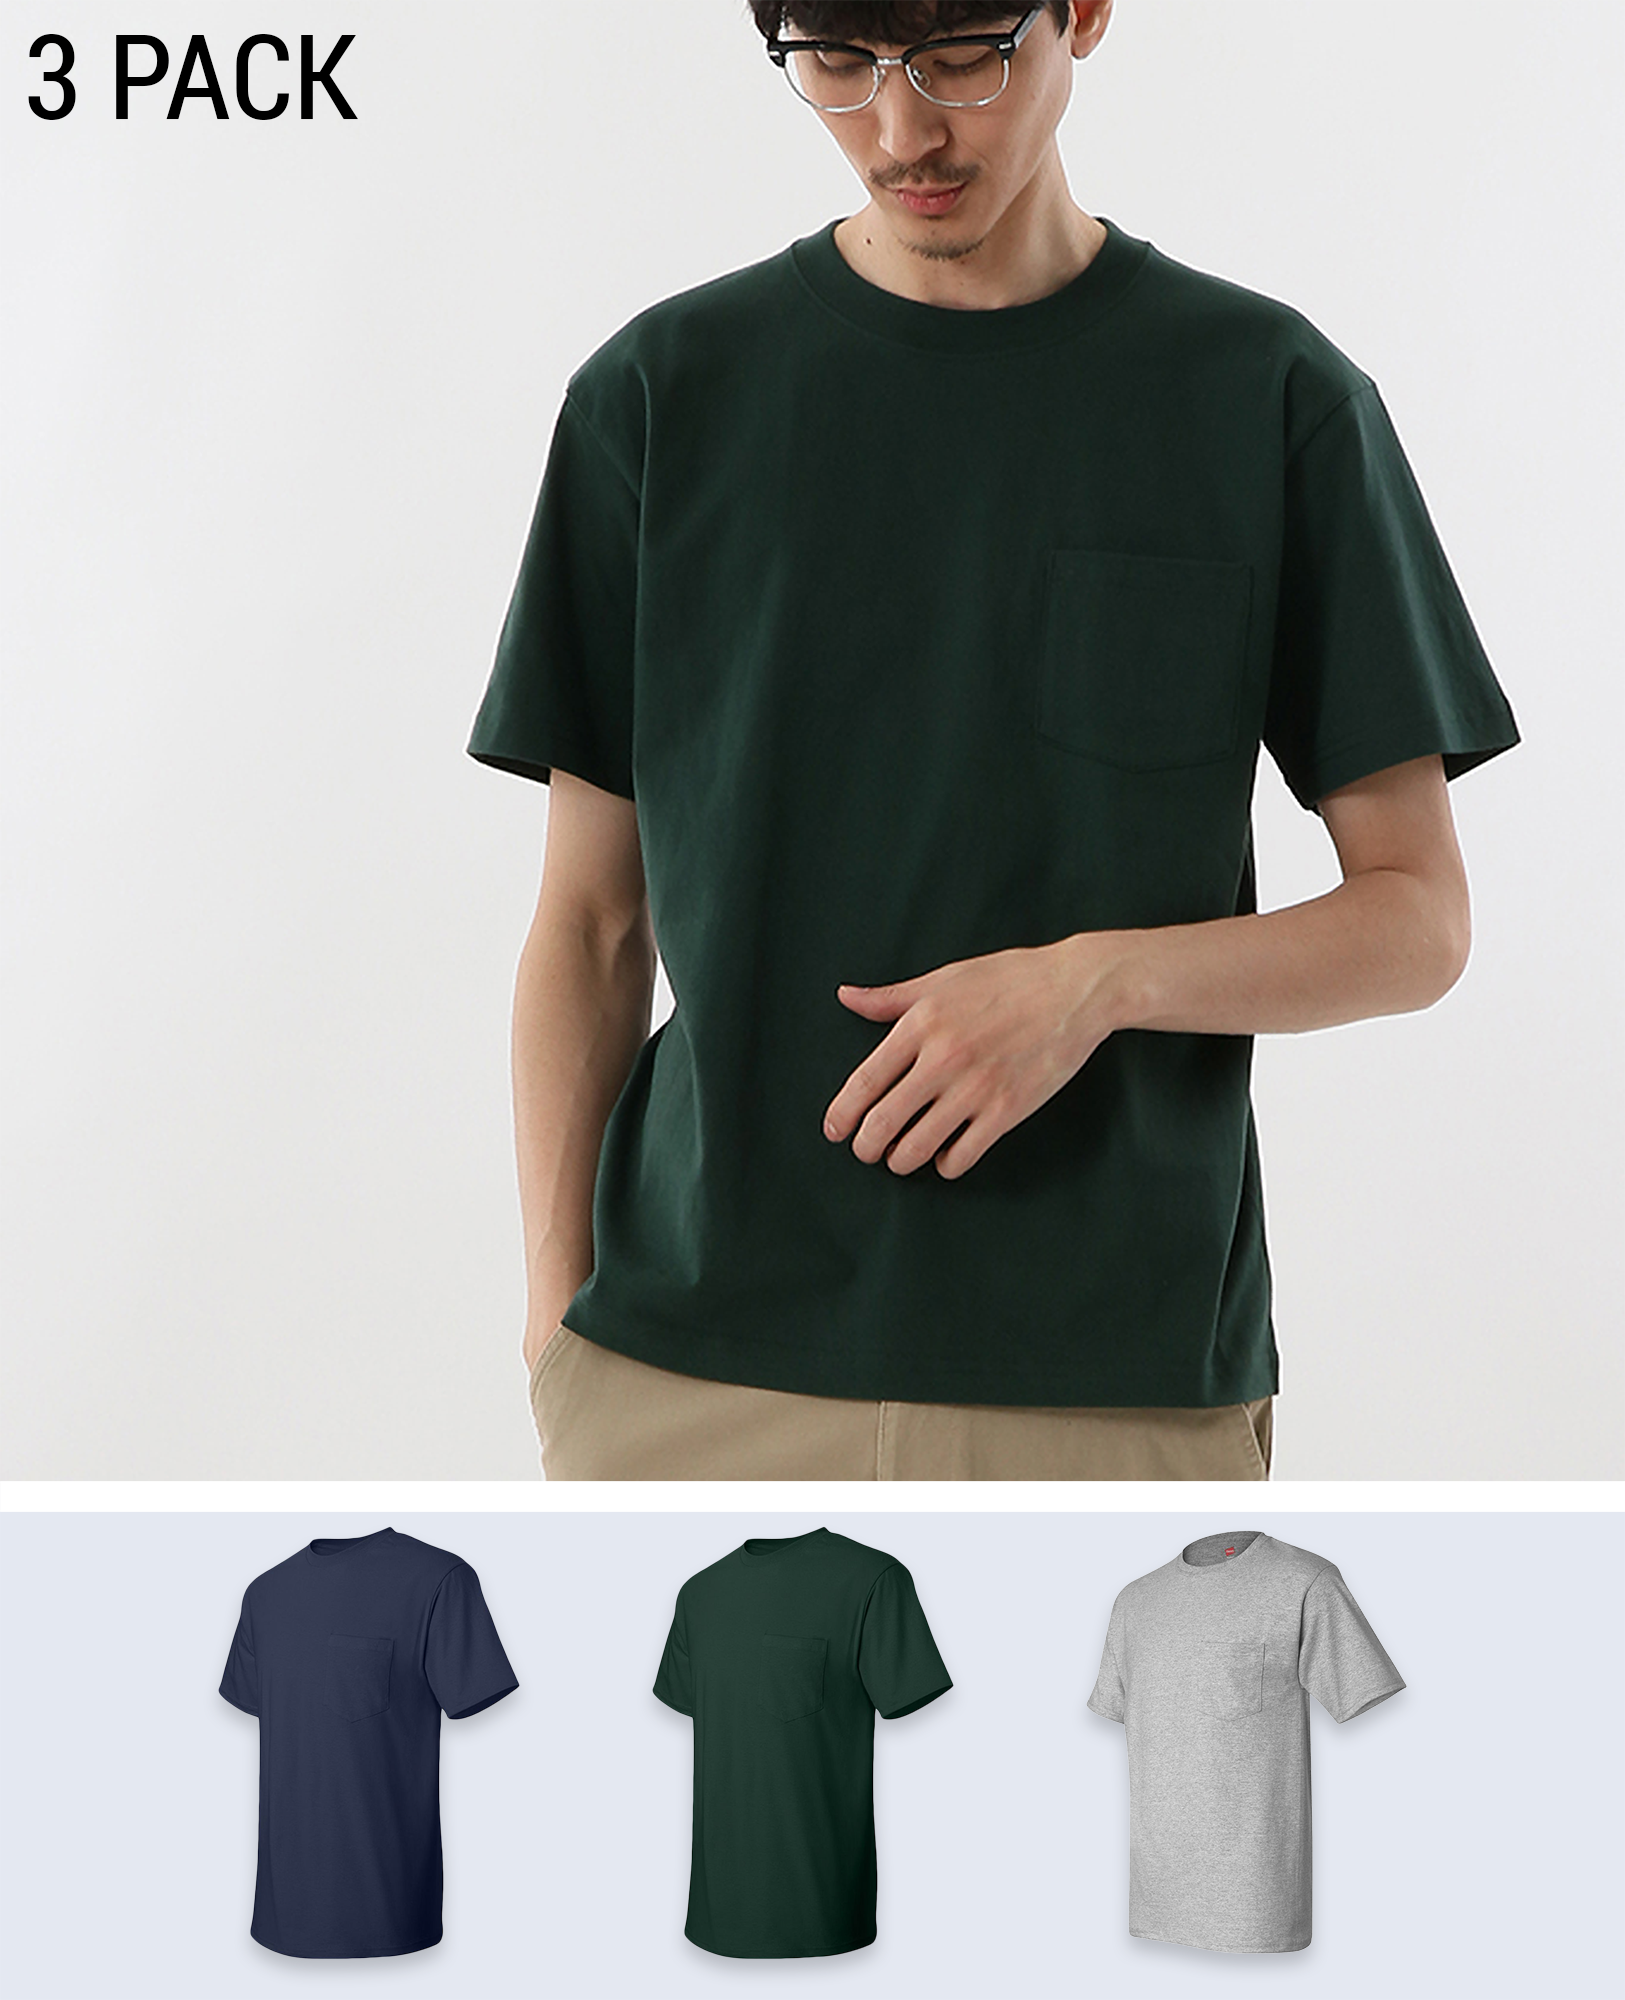 3 pack Heavyweight Pocket T-shirt - T-Shirts - Hanes - BRANMA